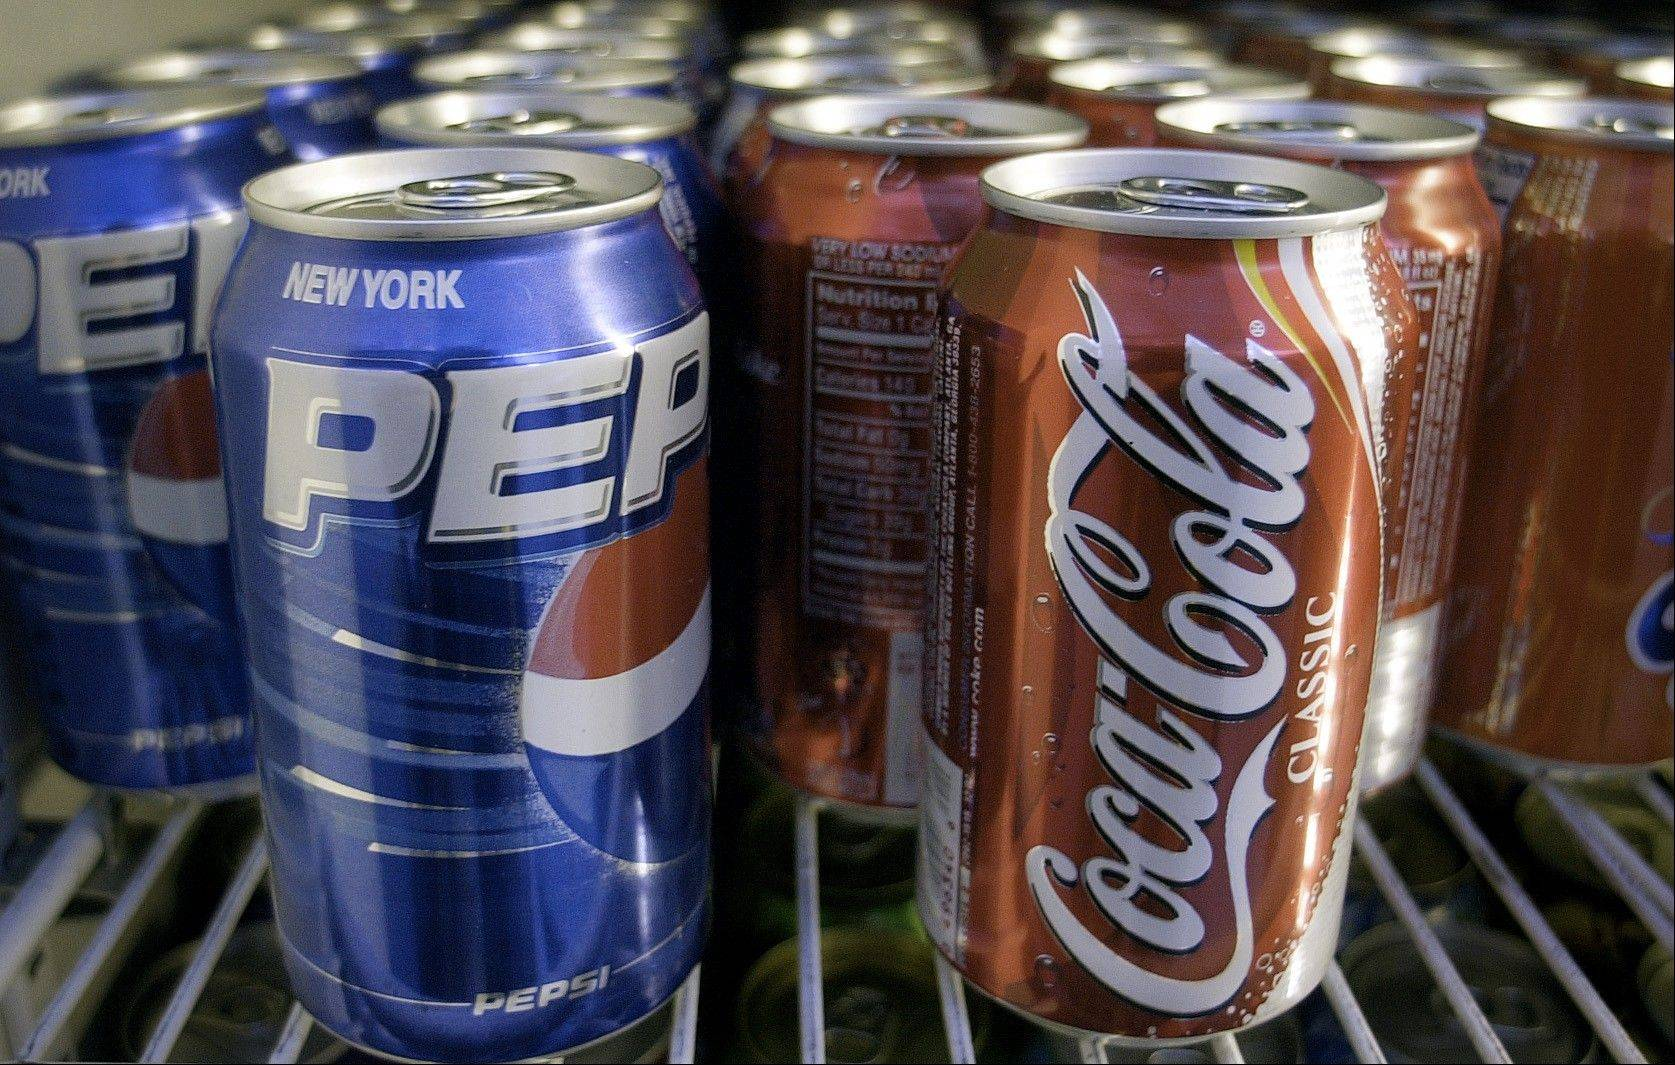 Americans' consumption of fizzy soft drinks, on the decline since 2005, fell last year to its lowest level since 1996.